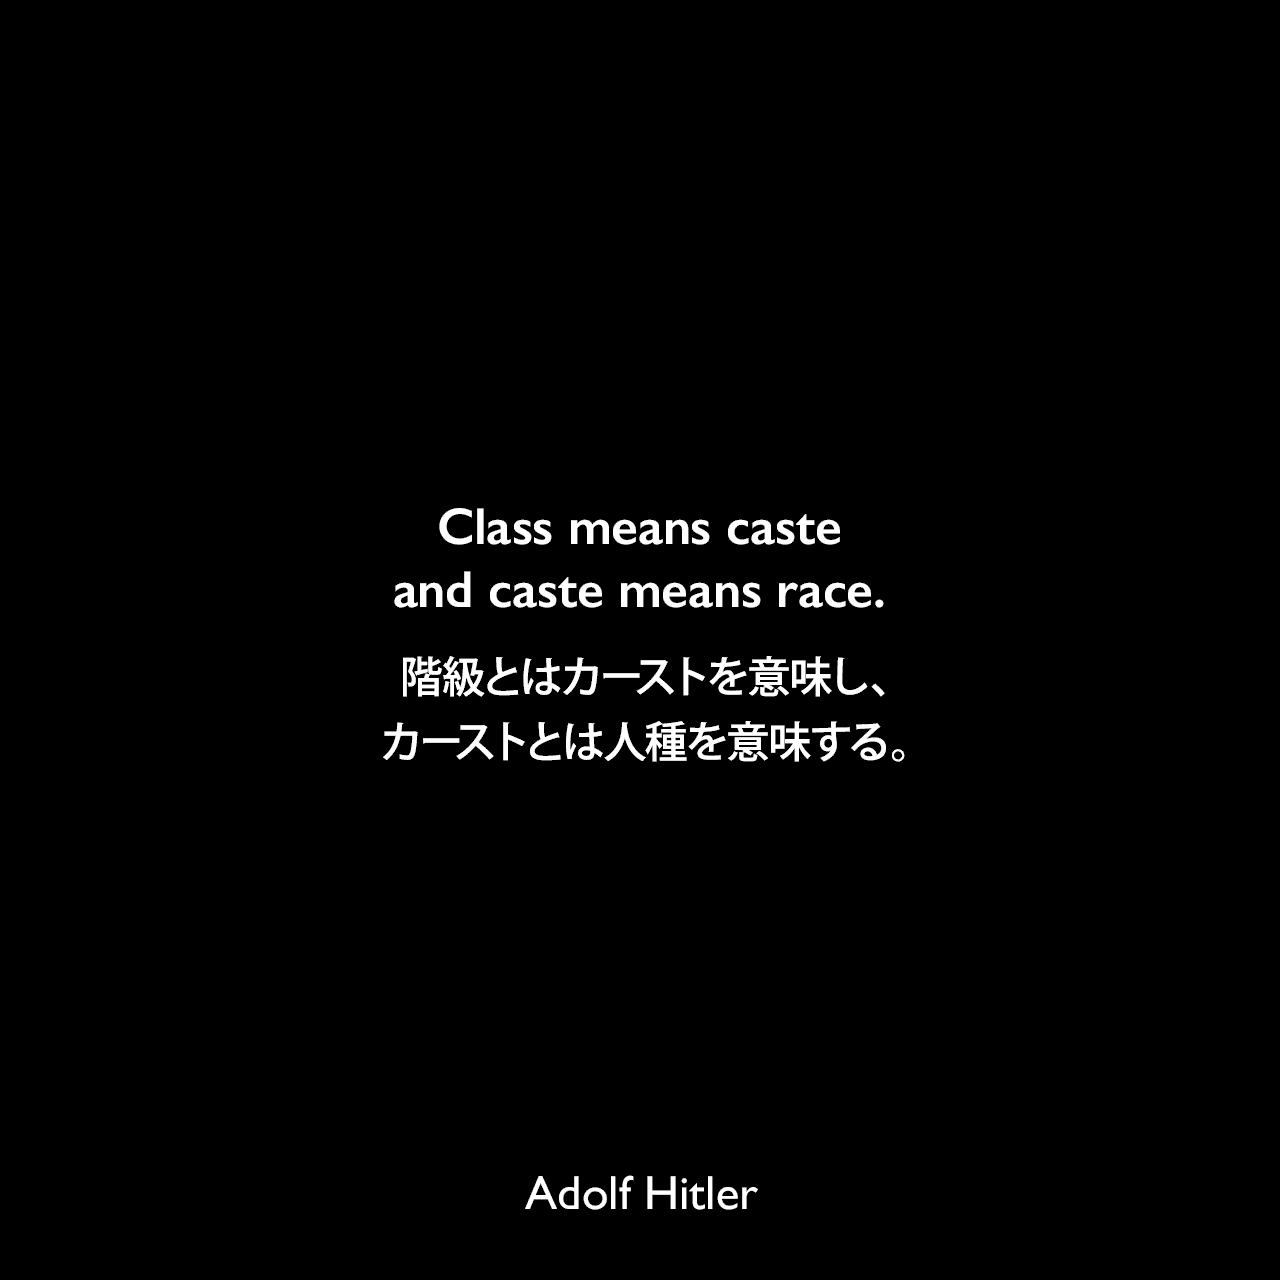 Class means caste and caste means race.階級とはカーストを意味し、カーストとは人種を意味する。- 1922年4月12日ミュンヘンでのスピーチよりAdolf Hitler